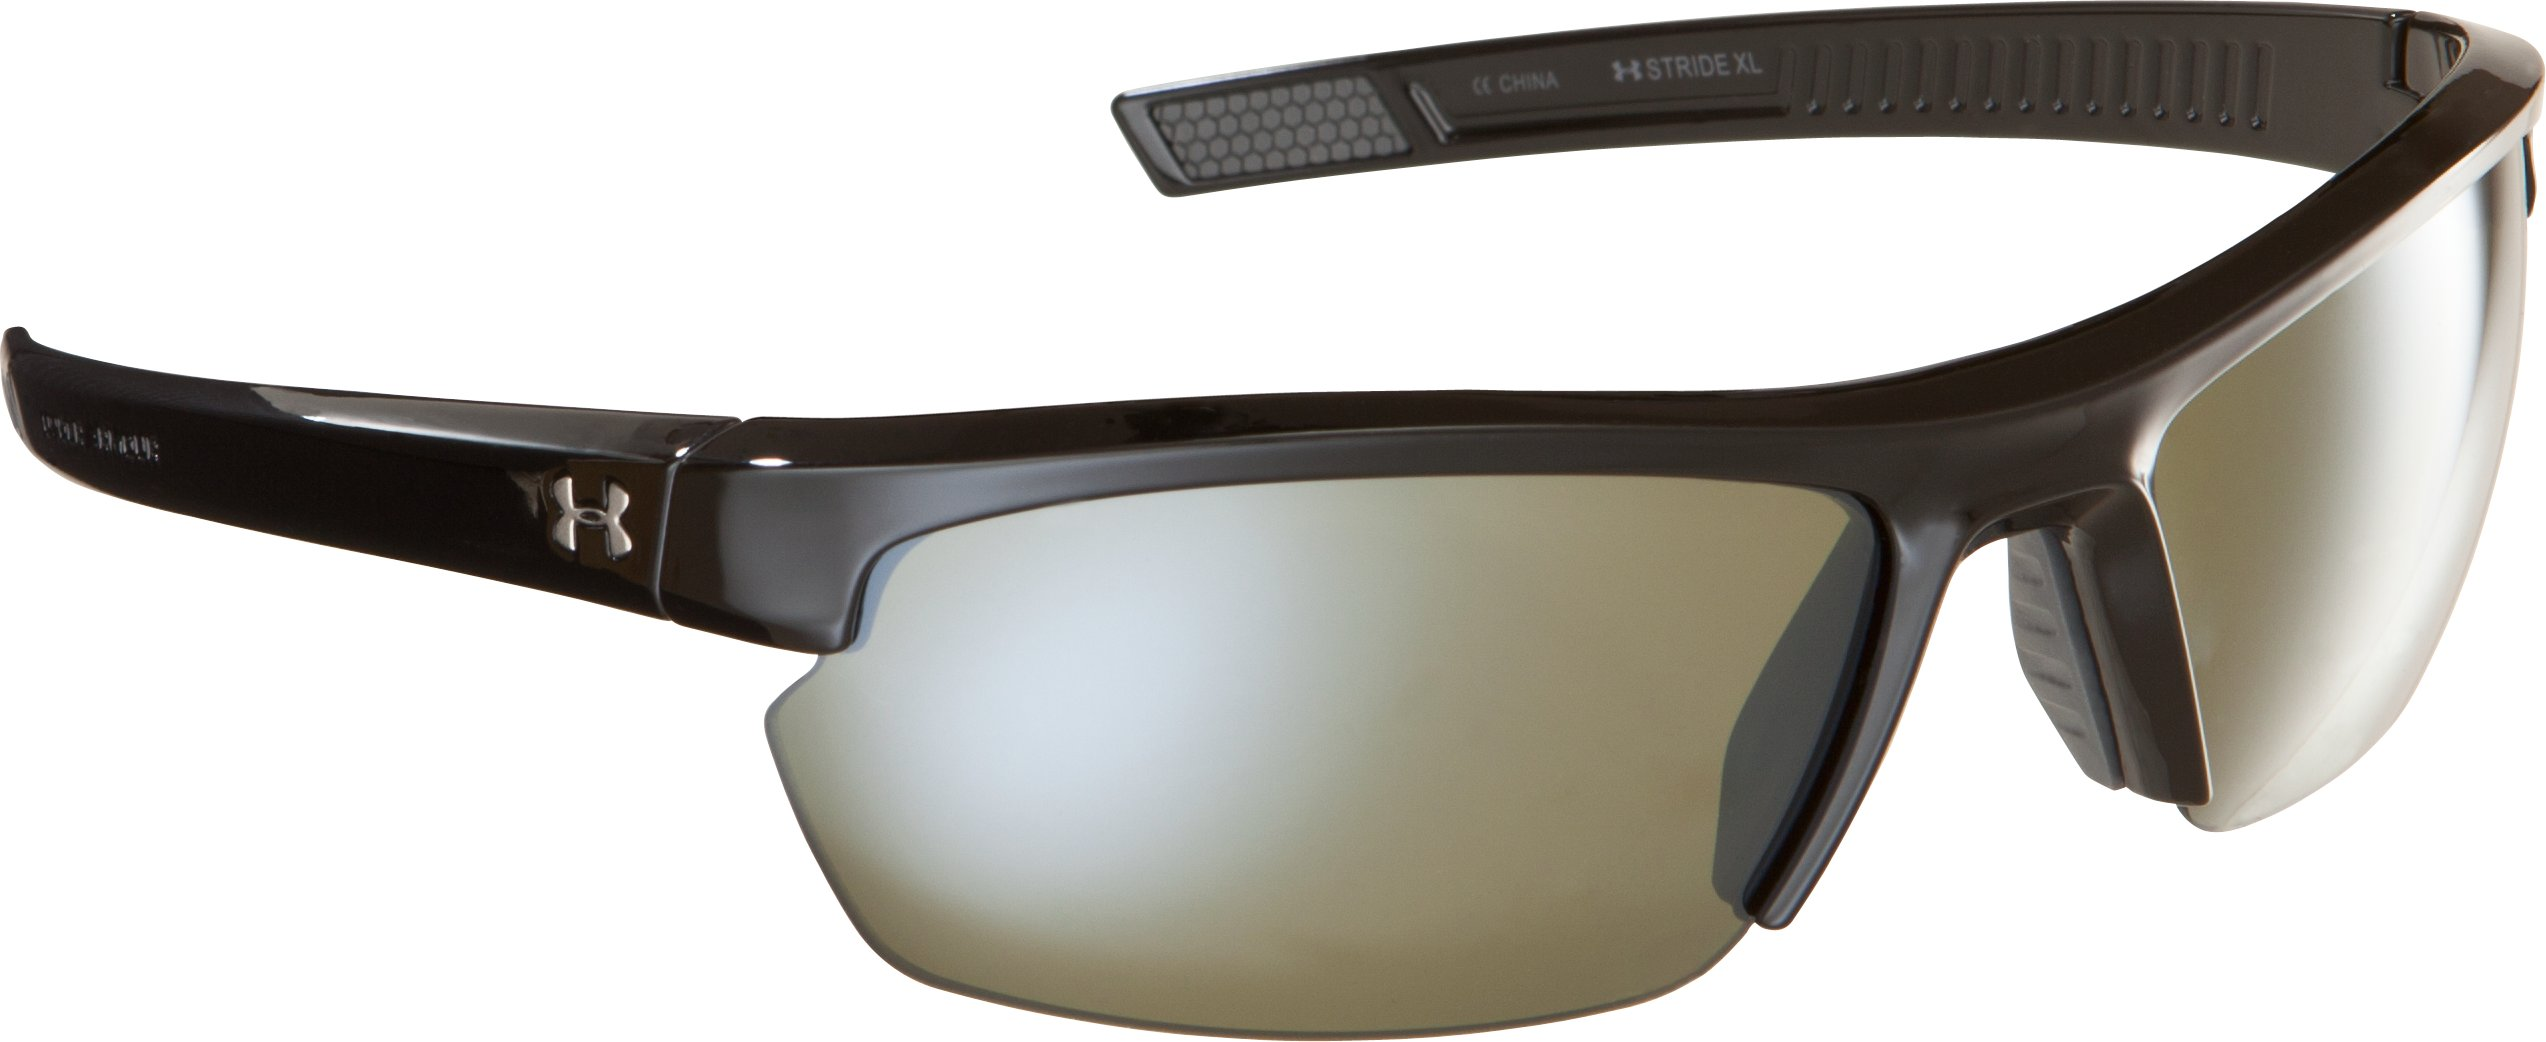 UA Stride XL Game Day Multiflection™ Sunglasses, Shiny Black